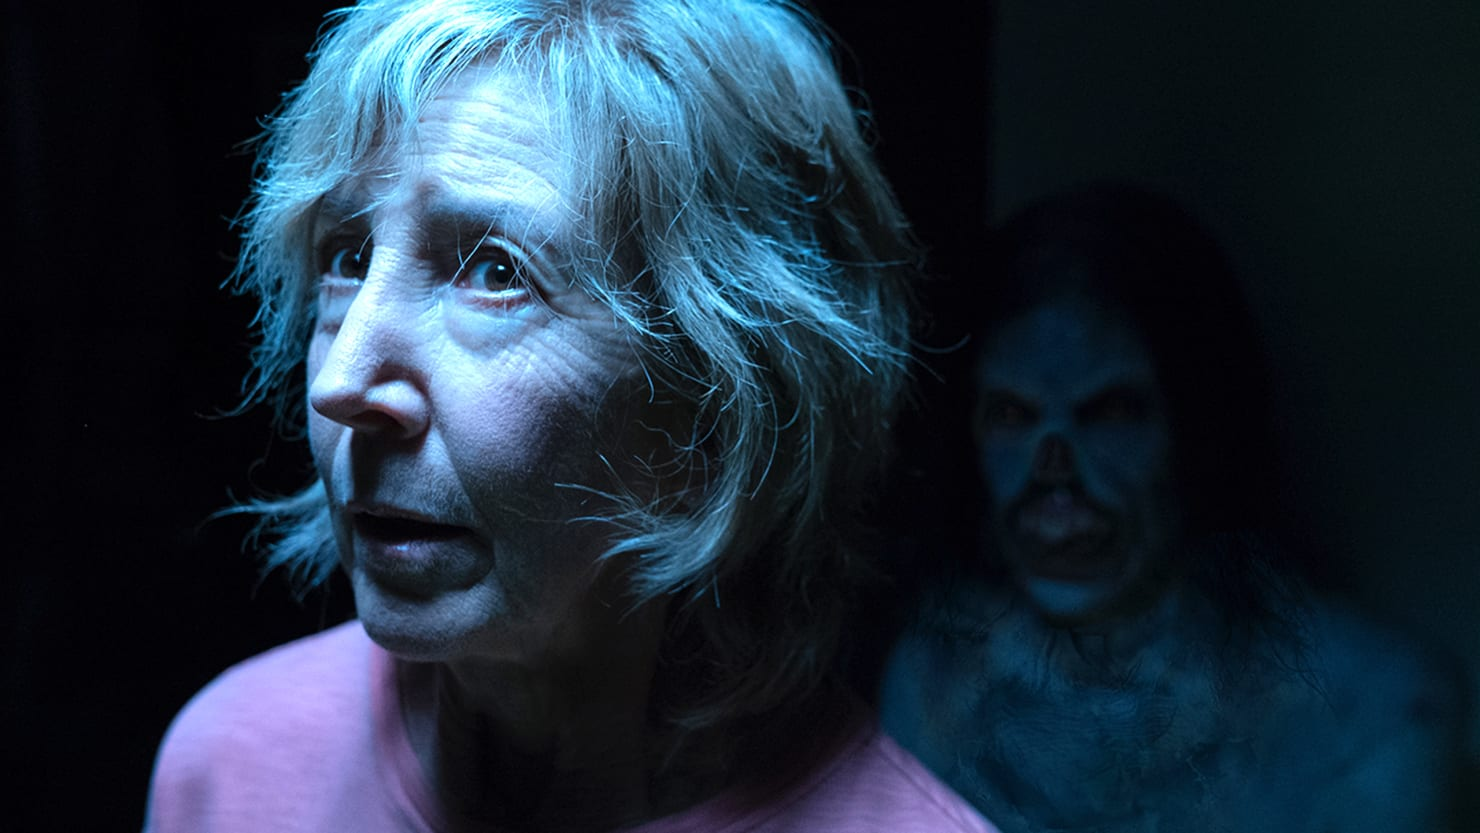 How 'Insidious' Changed the Horror Movie Game